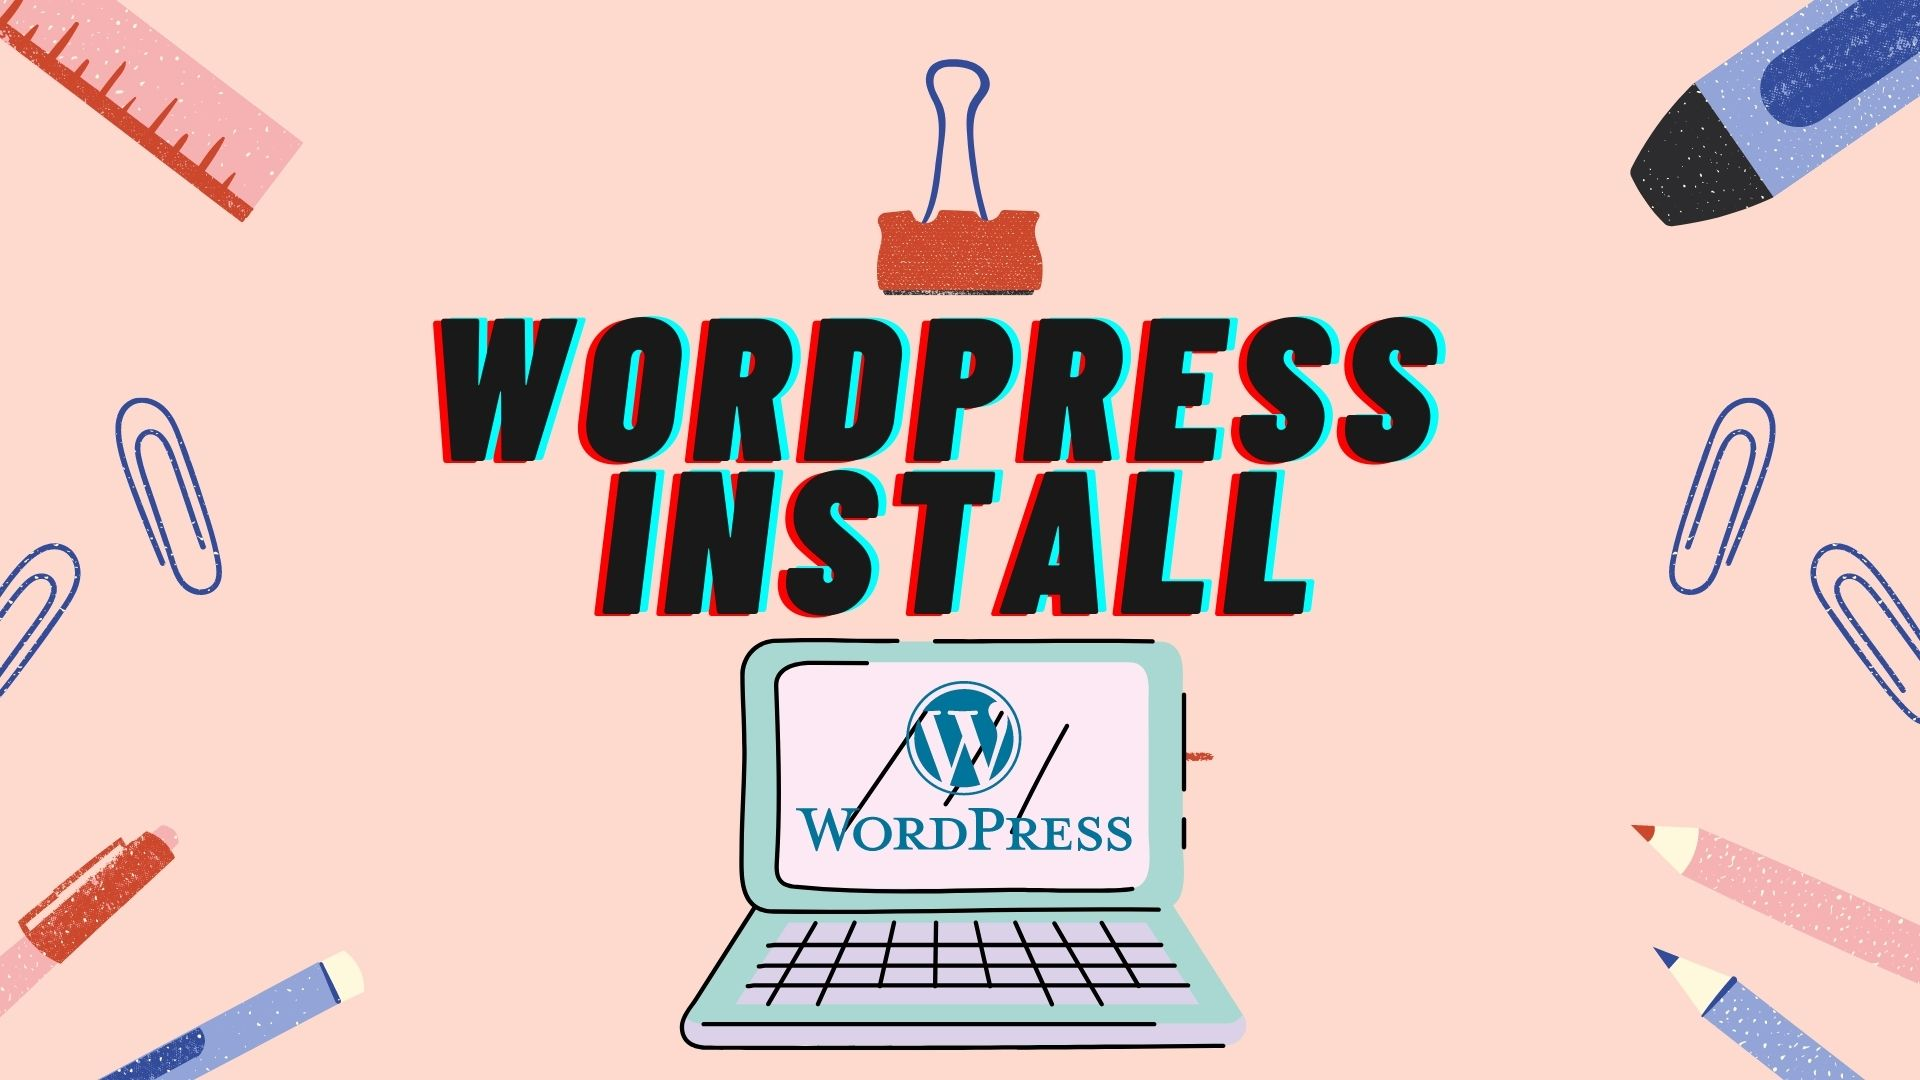 I will install WordPress,  setup theme and do some customization